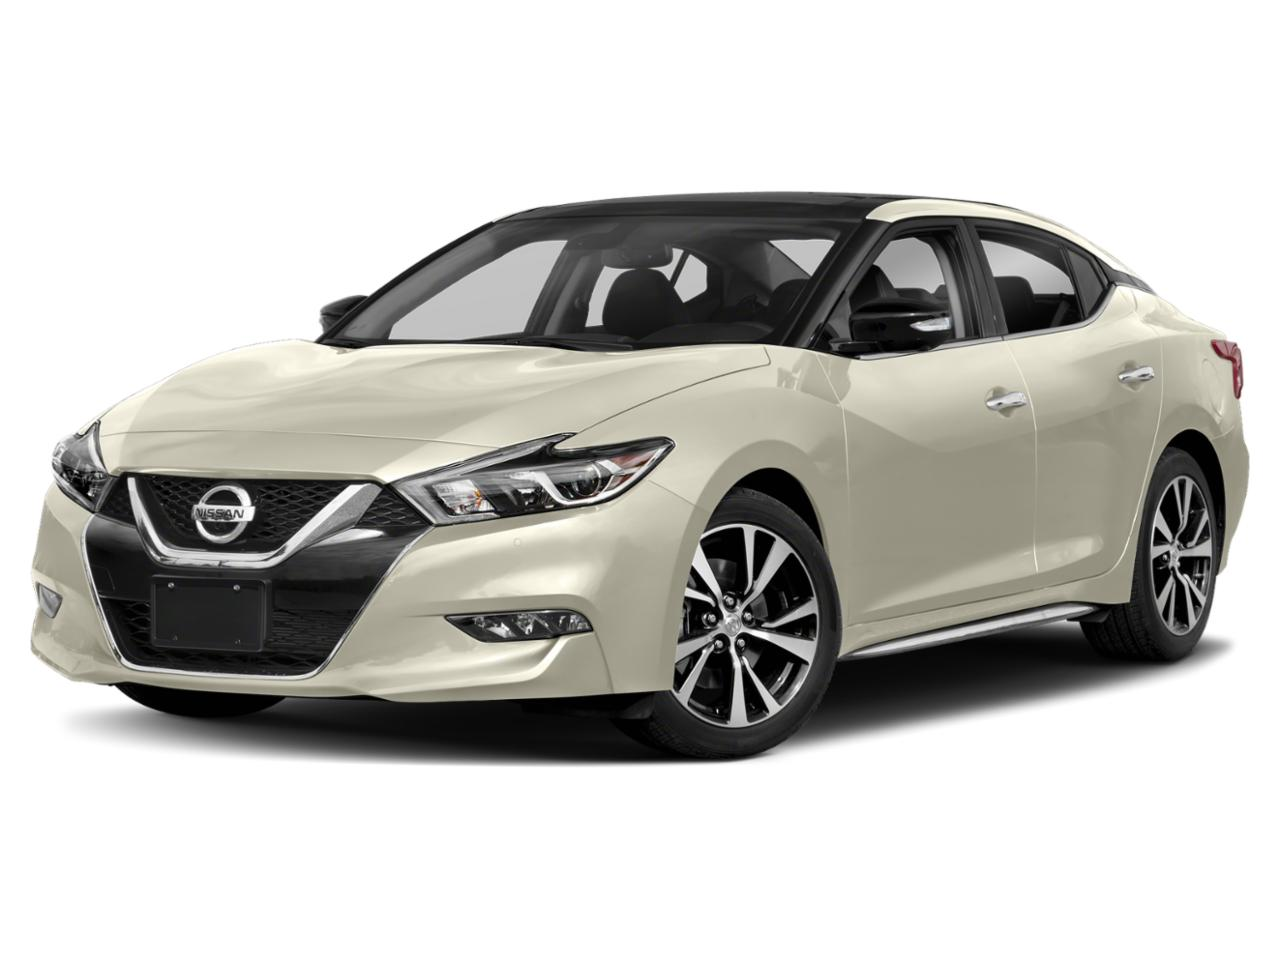 2018 Nissan Maxima Vehicle Photo in Doylestown, PA 18901